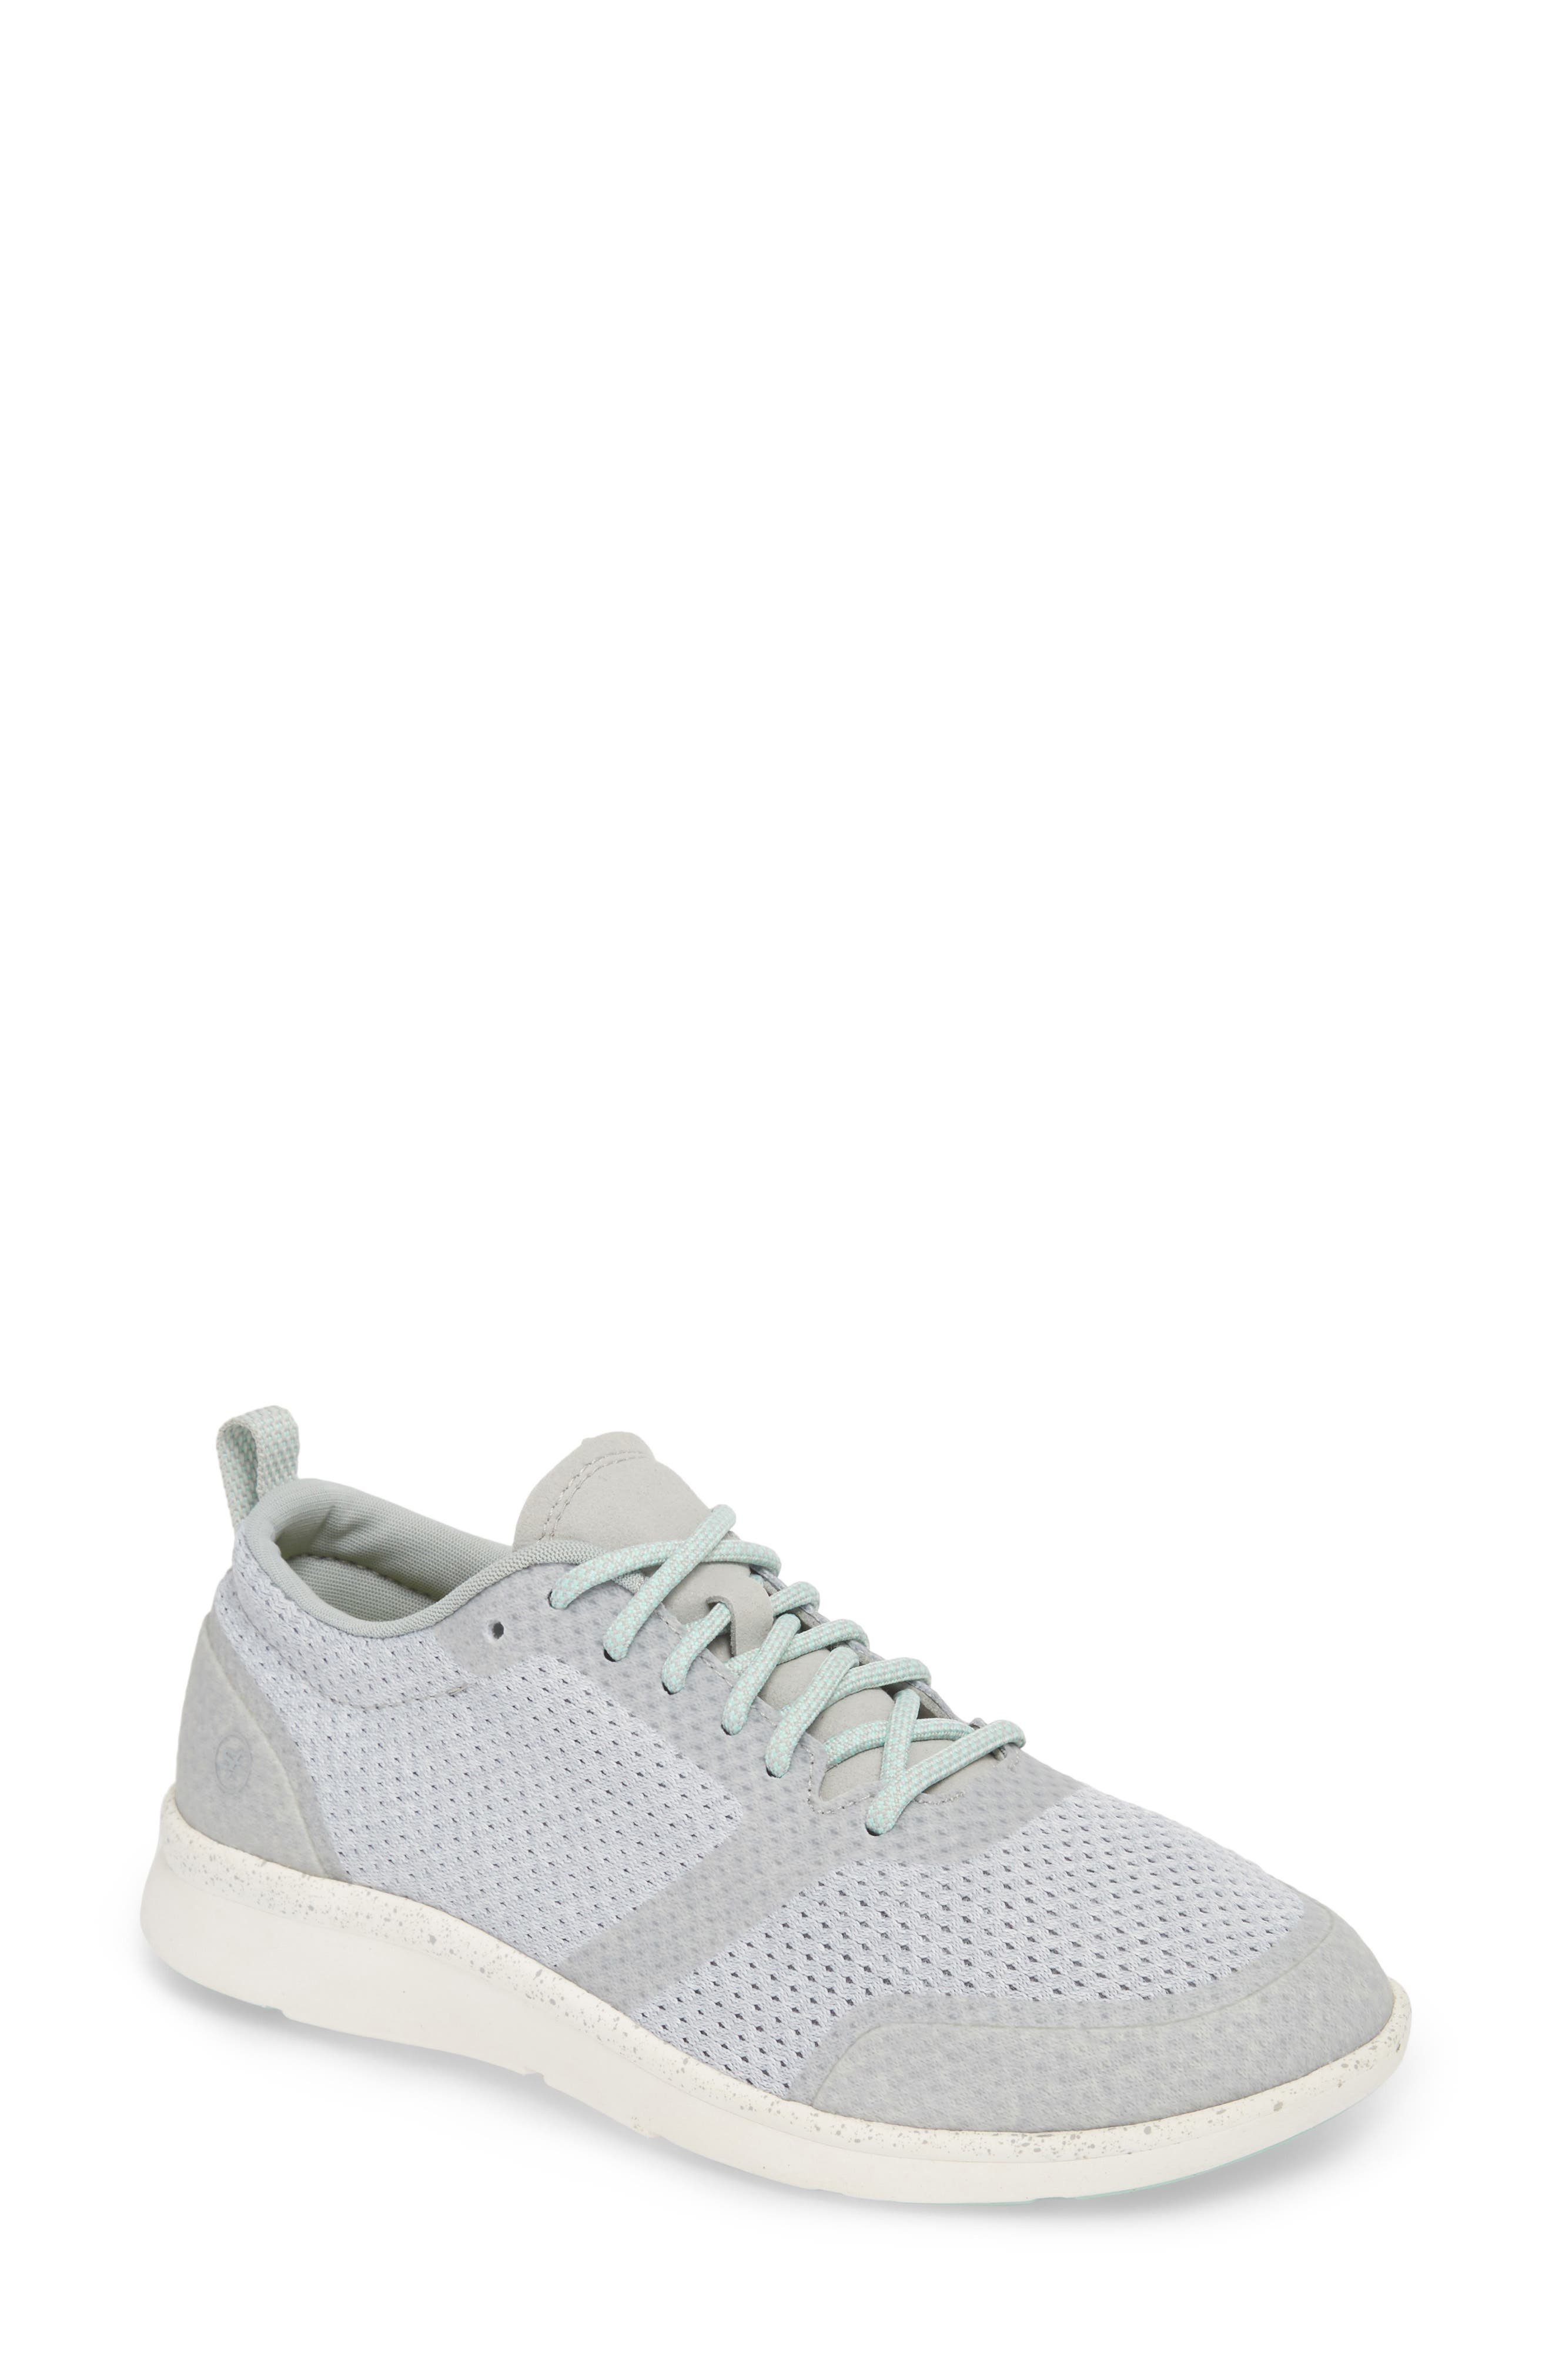 Linden Sneaker,                             Main thumbnail 1, color,                             High Rise/ Yucca